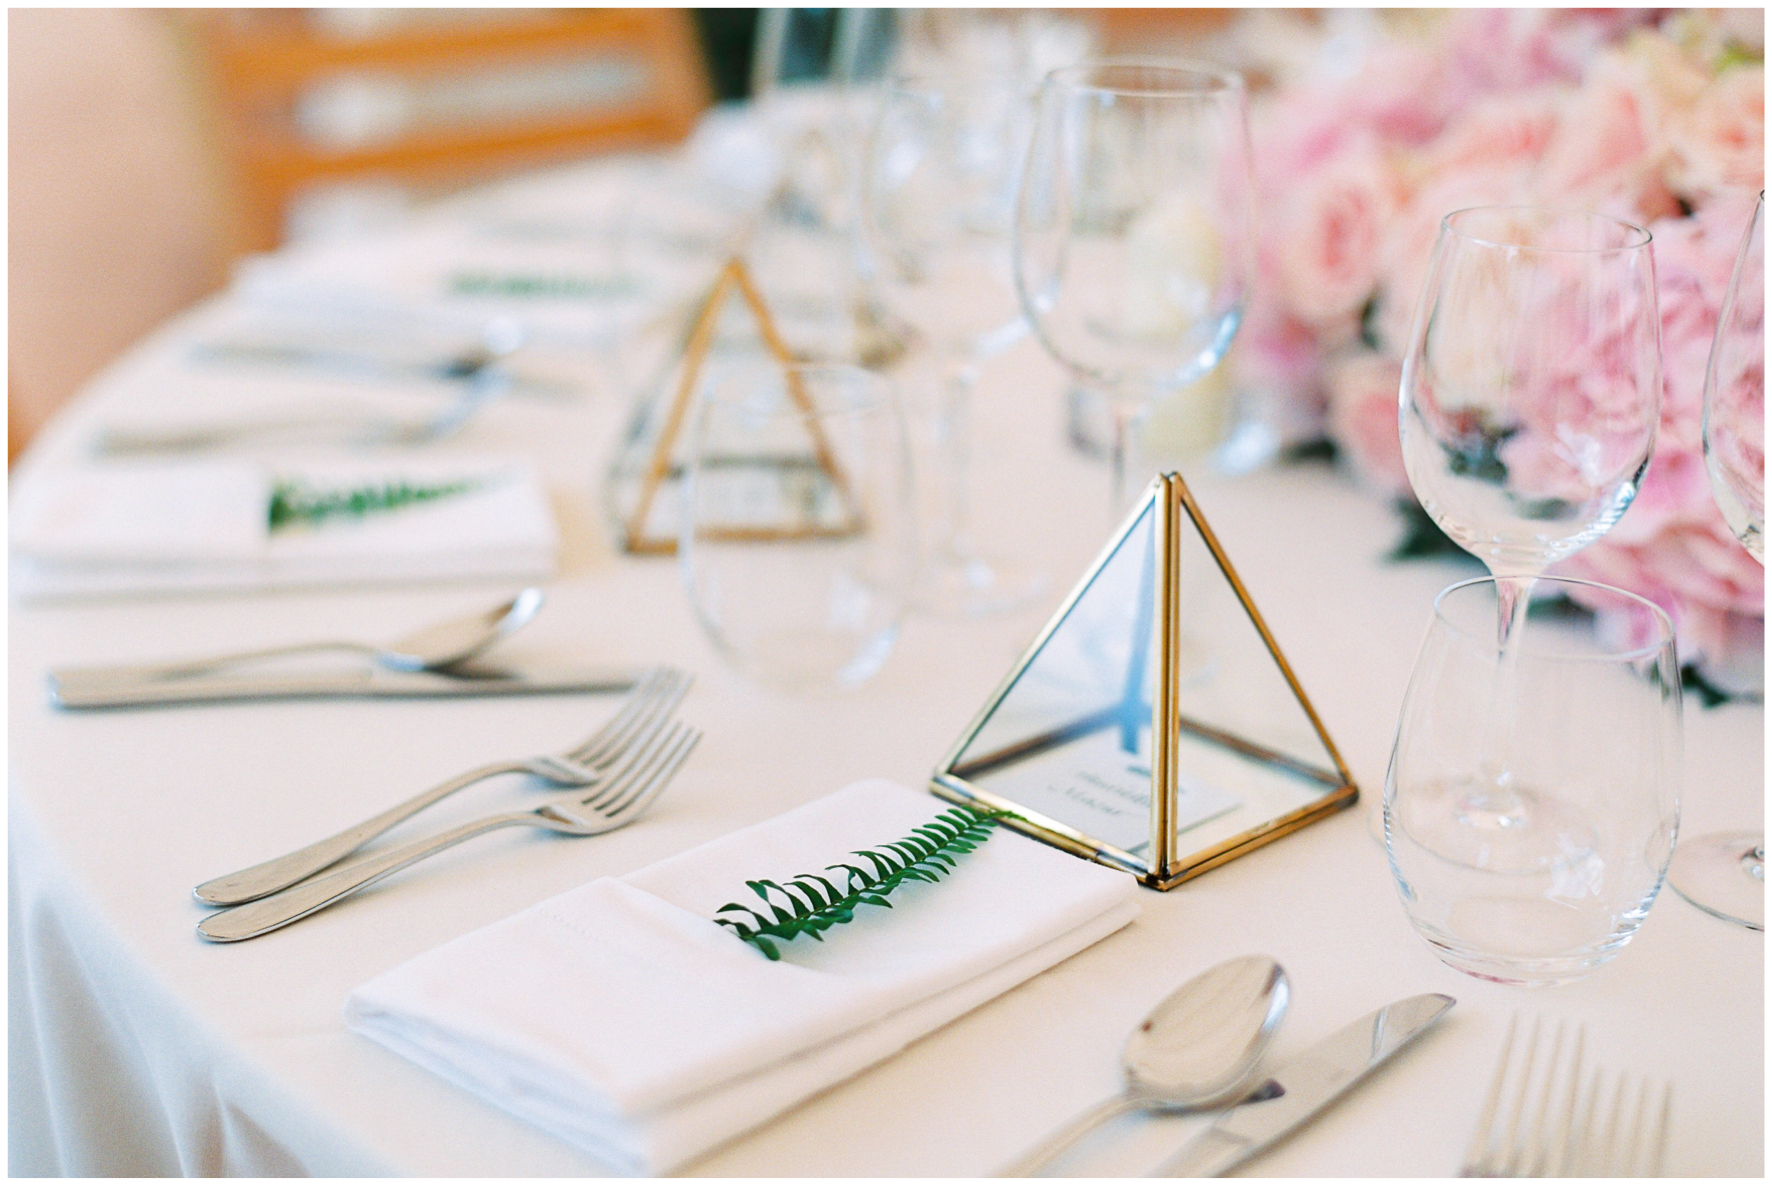 glamping wedding, Lucy Davenport Photography, home wedding, Sperry tent, PapaKata, glass favour, greenery